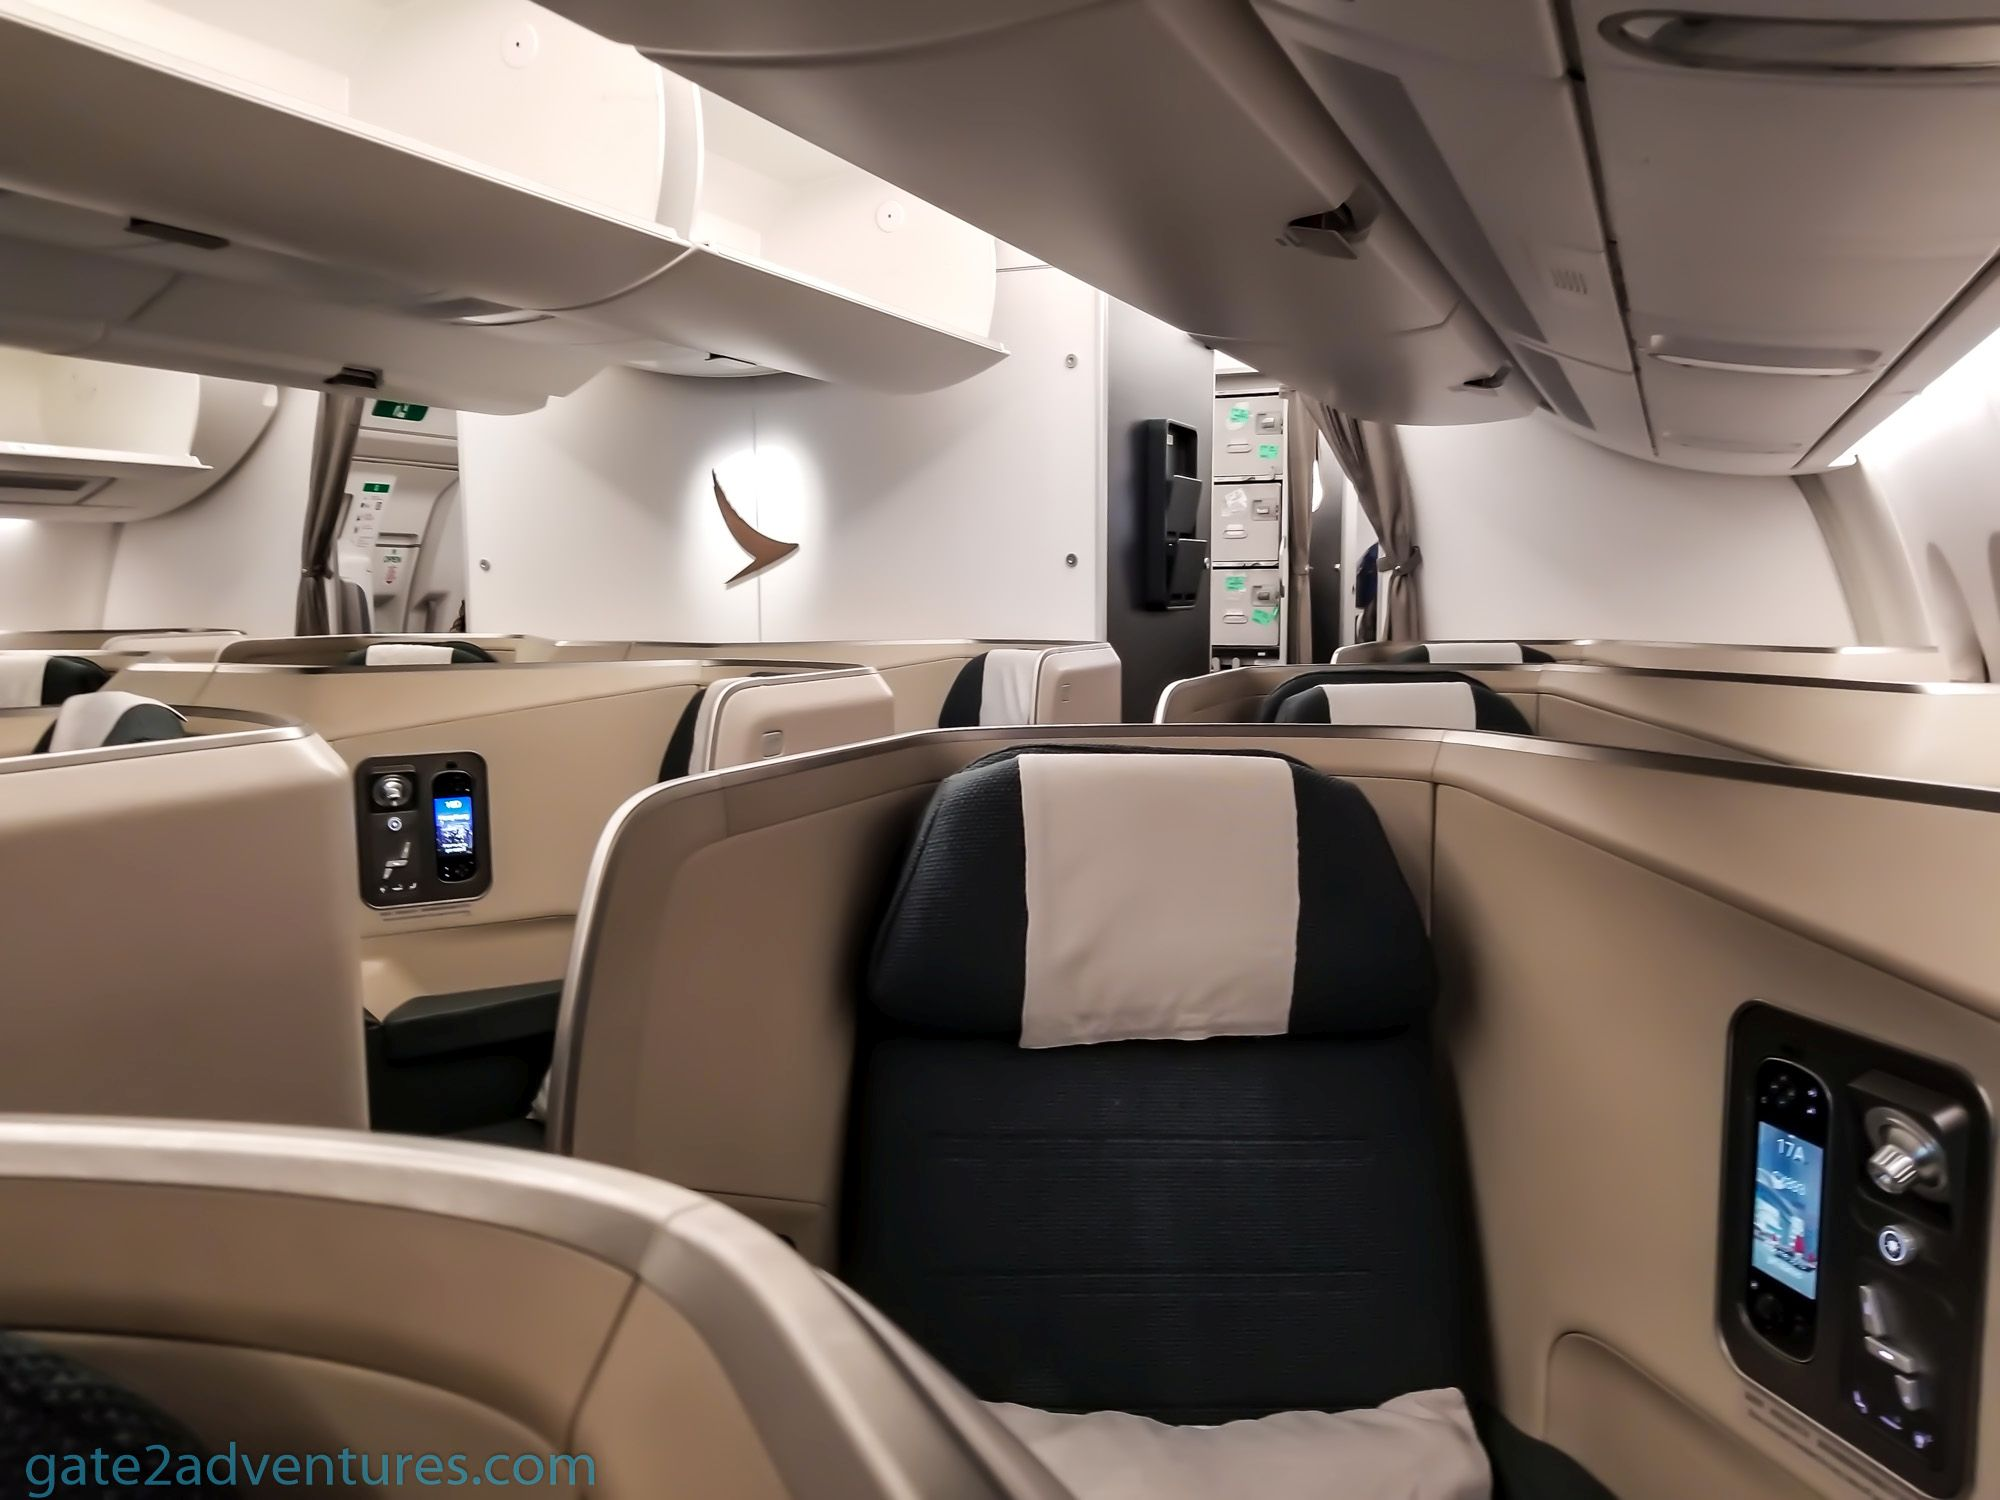 Flight Review: Cathay Pacific Business Class - Airbus A350